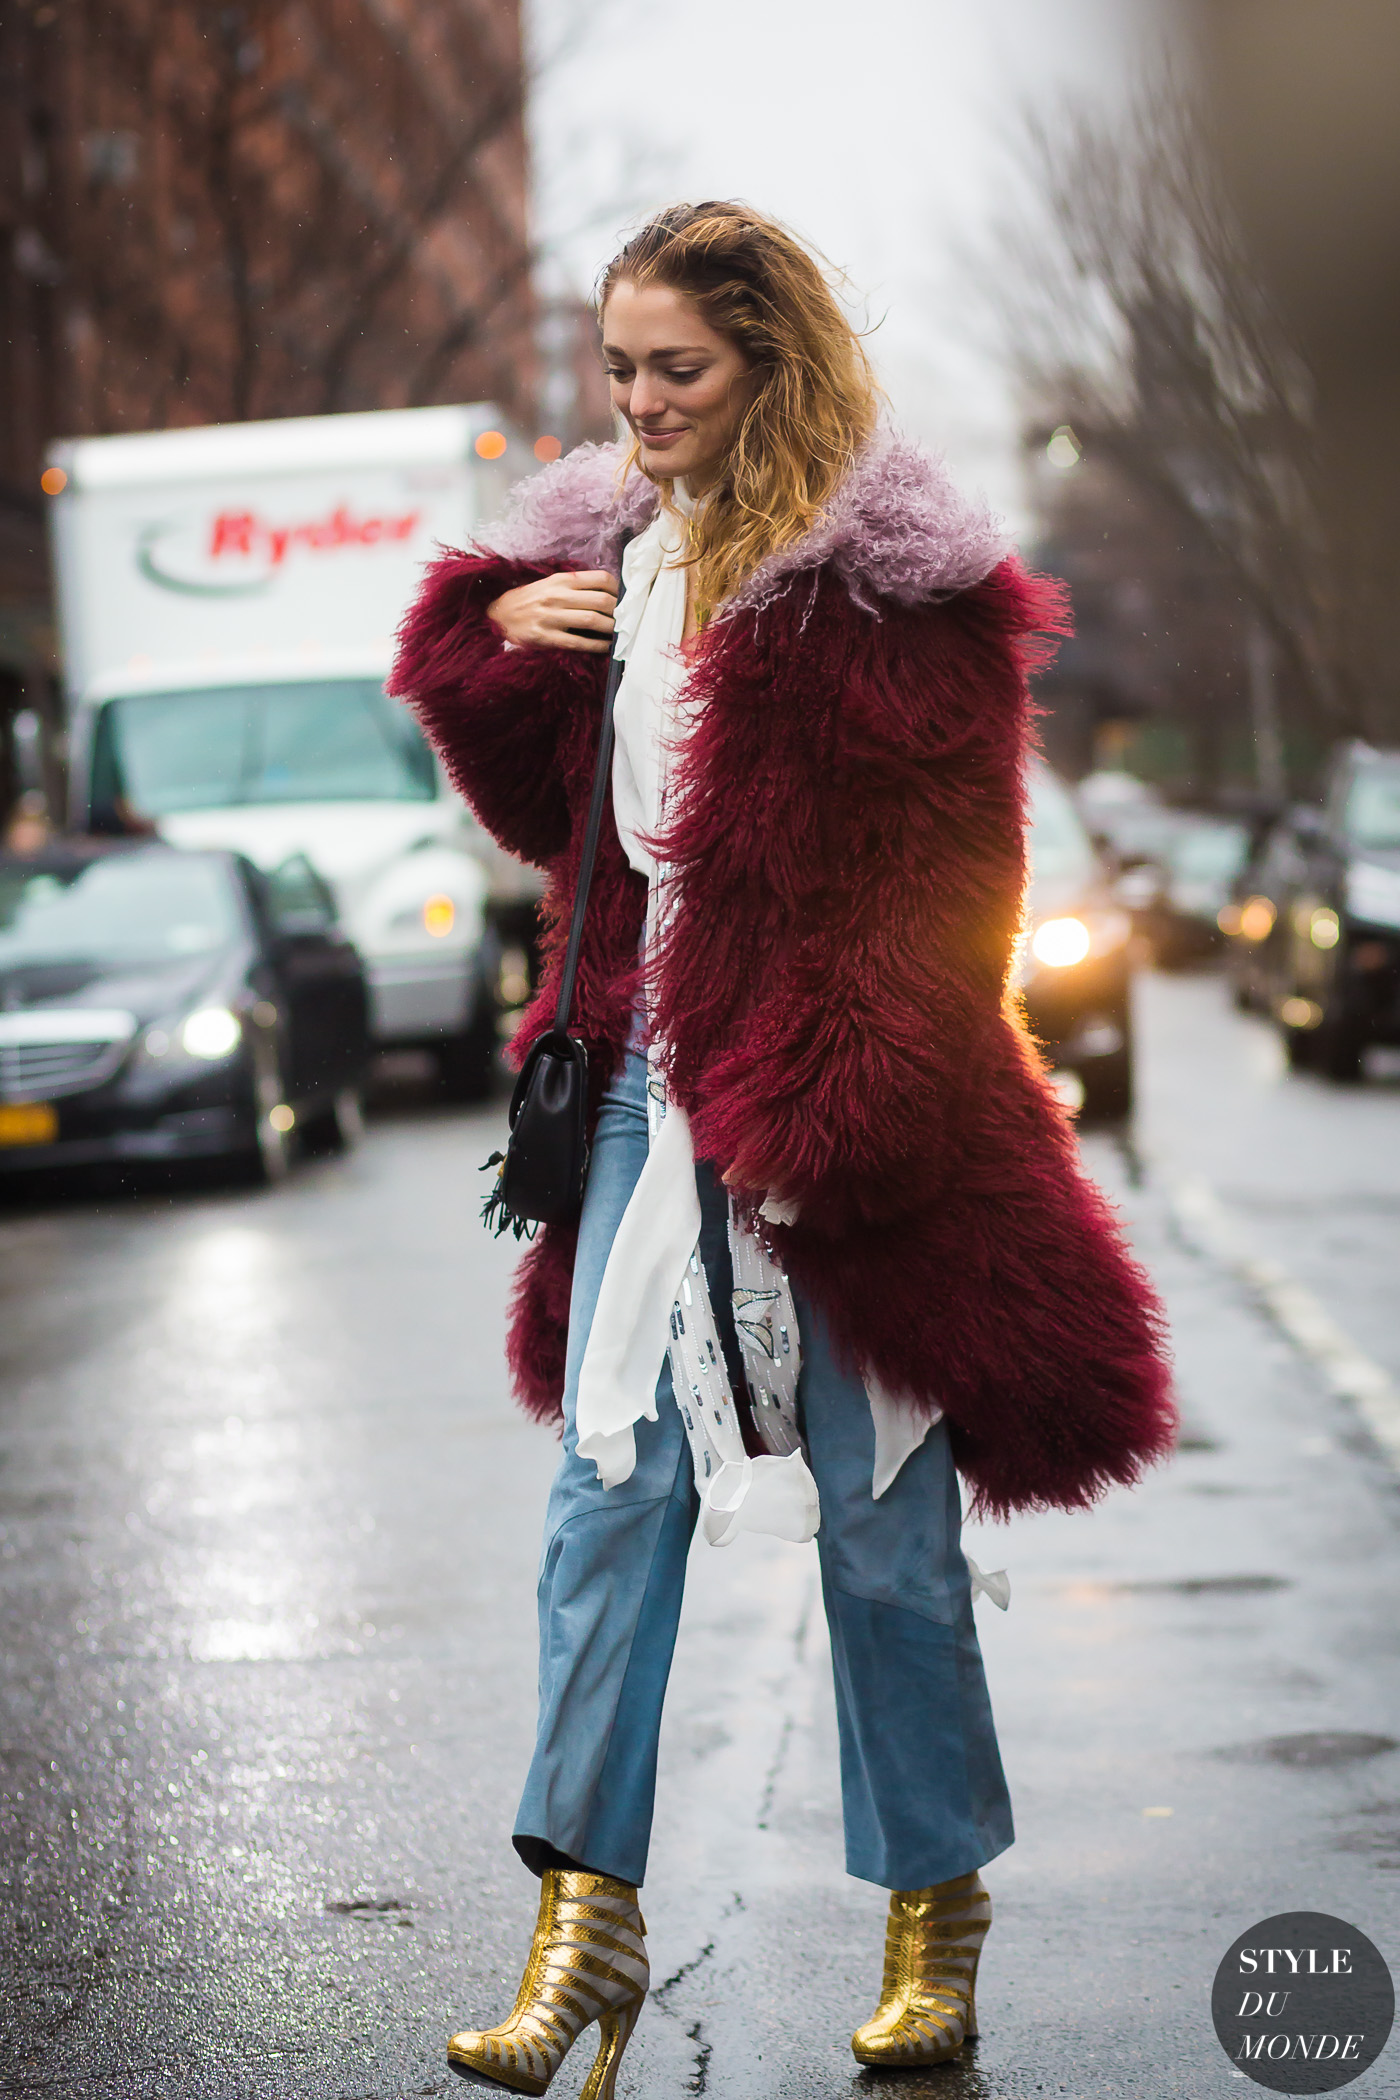 New York Fashion Week Fw 2016 Street Style Sofia Sanchez